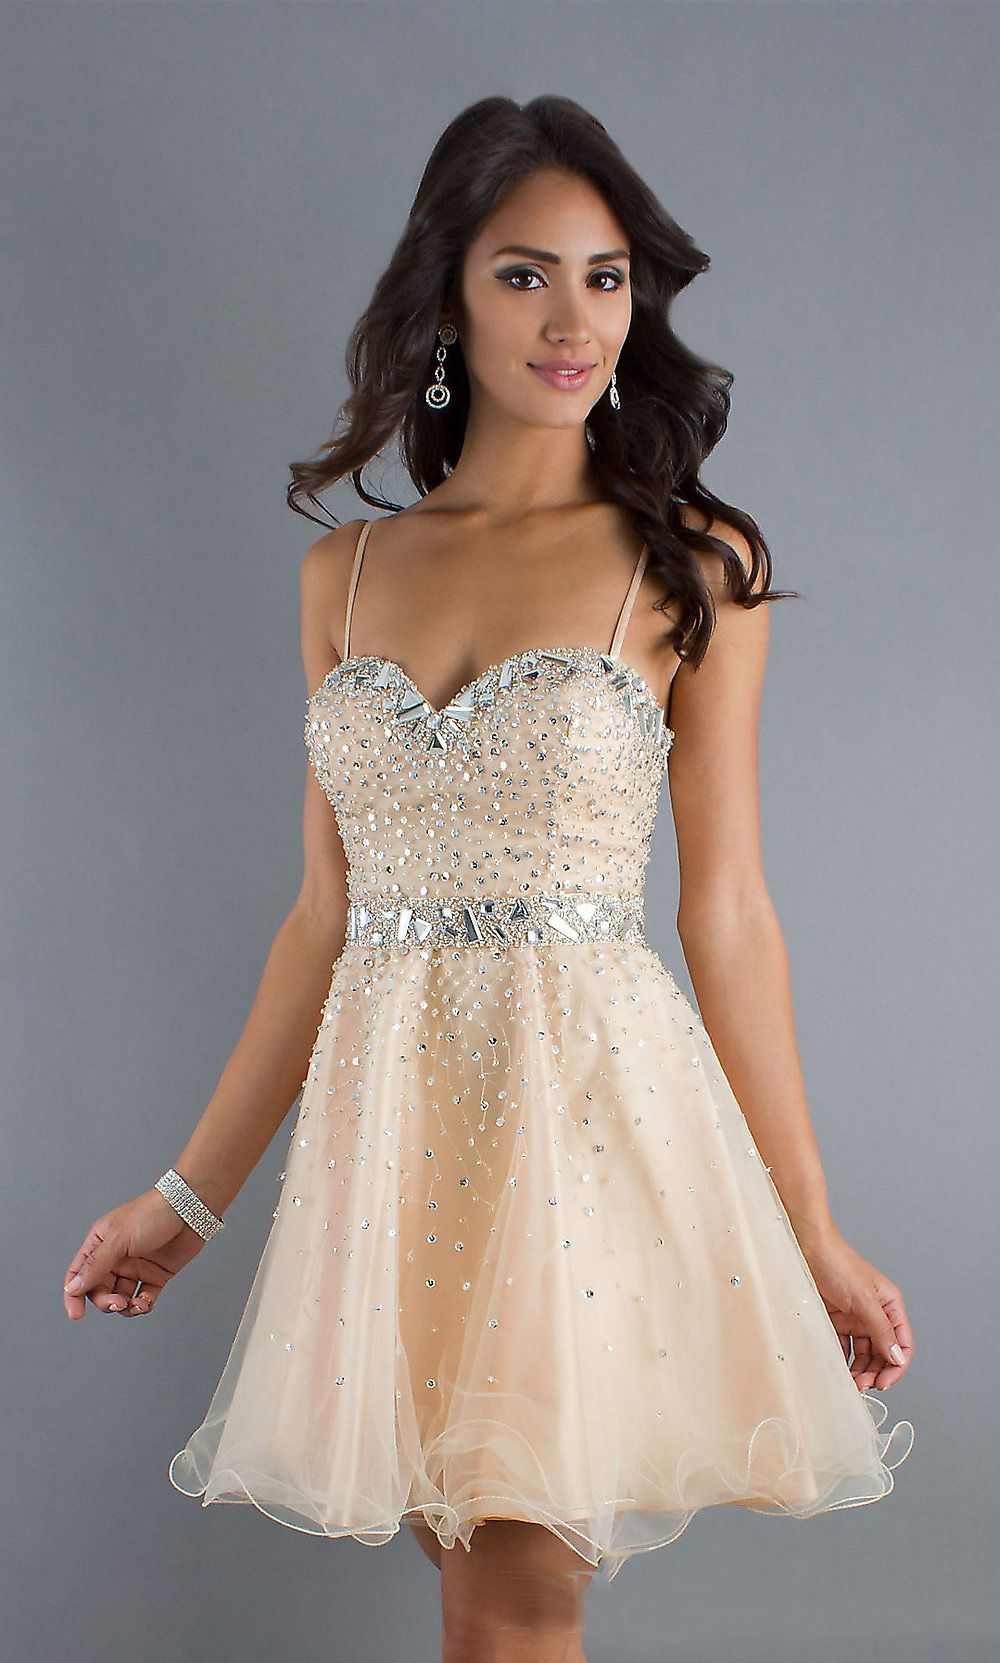 The charming spaghetti strap sweetheart neck champagne organza short